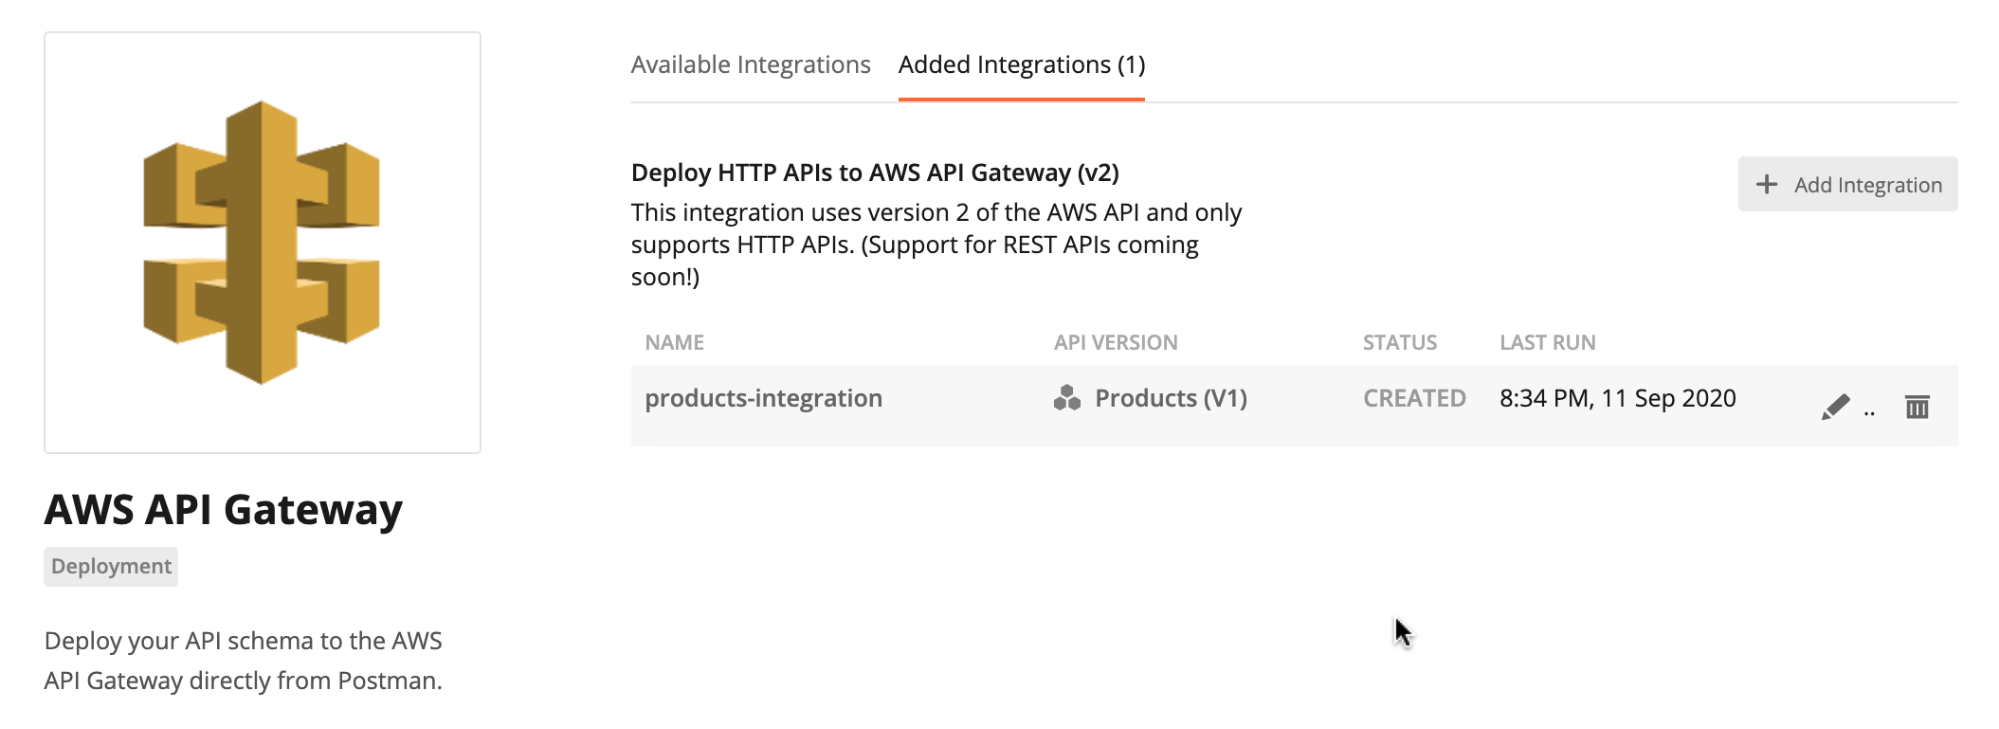 Added integrations within the AWS API Gateway